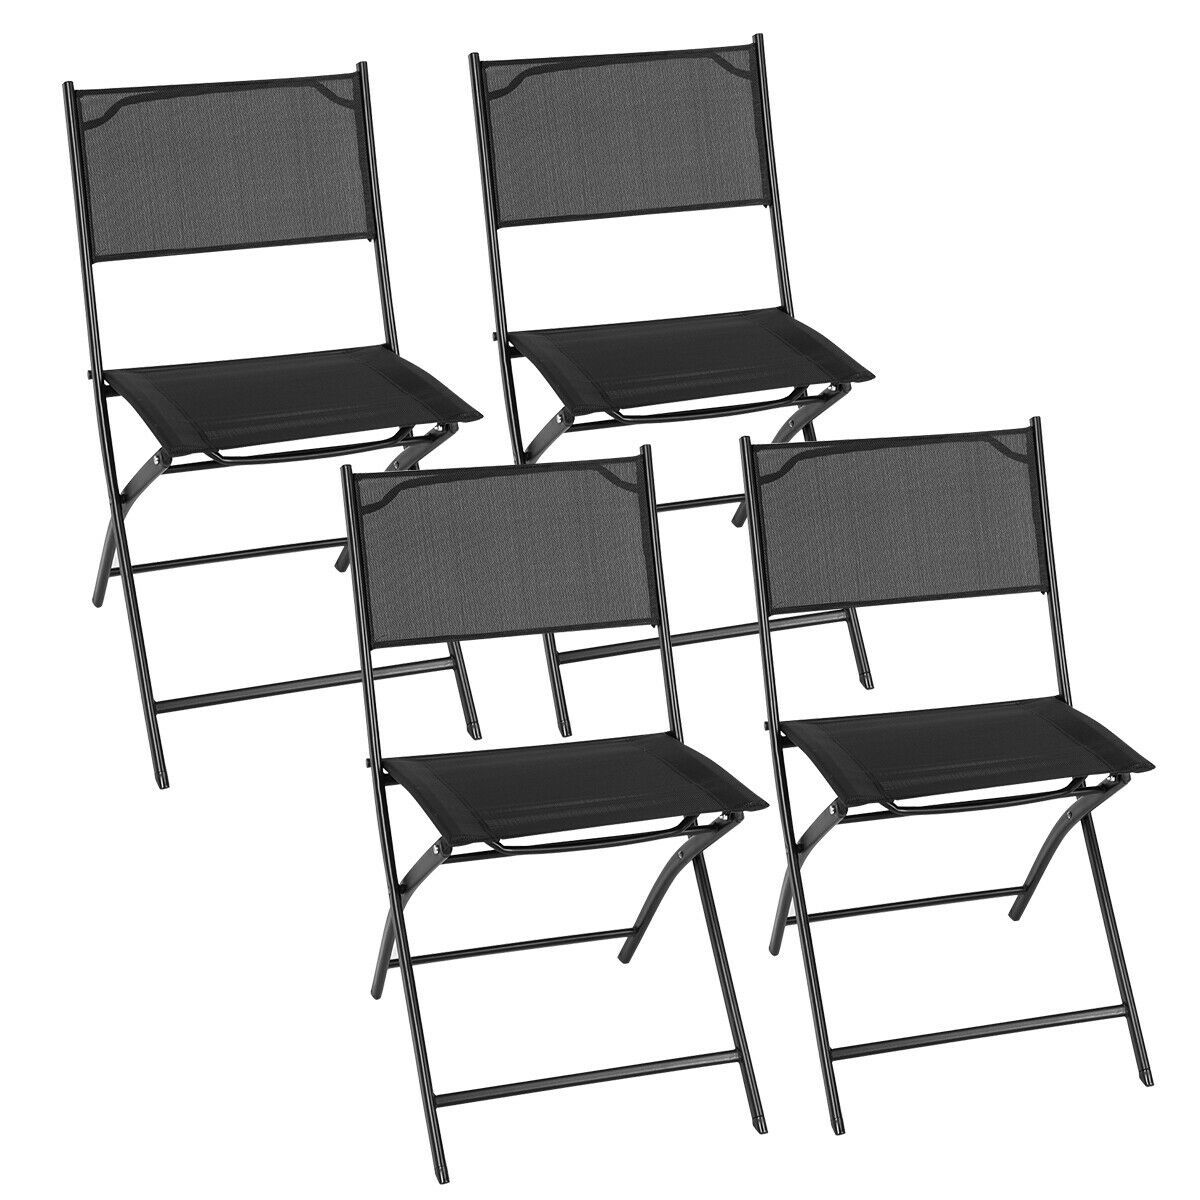 Costway Set of 4 Outdoor Patio Folding Chairs Camping Deck